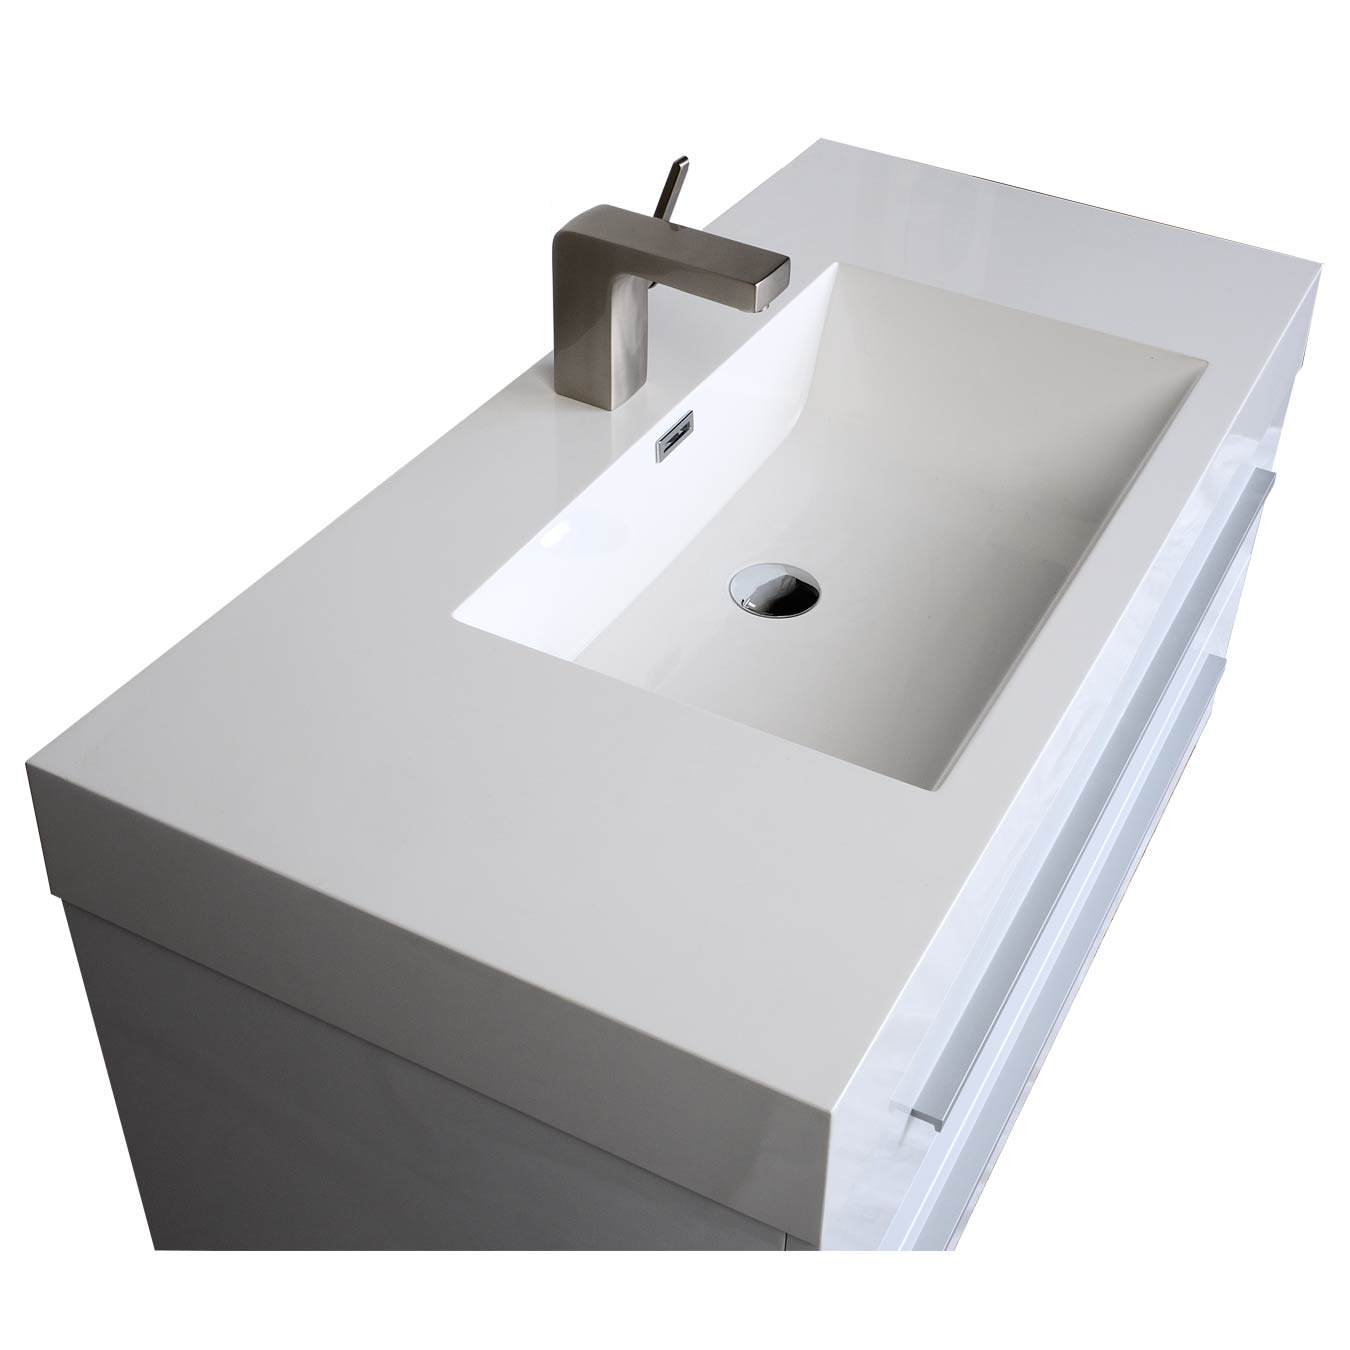 Contemporary bathroom vanities white - 31 25 Wall Mount Modern Bathroom Vanity In High Gloss White Tn M800 Hgw